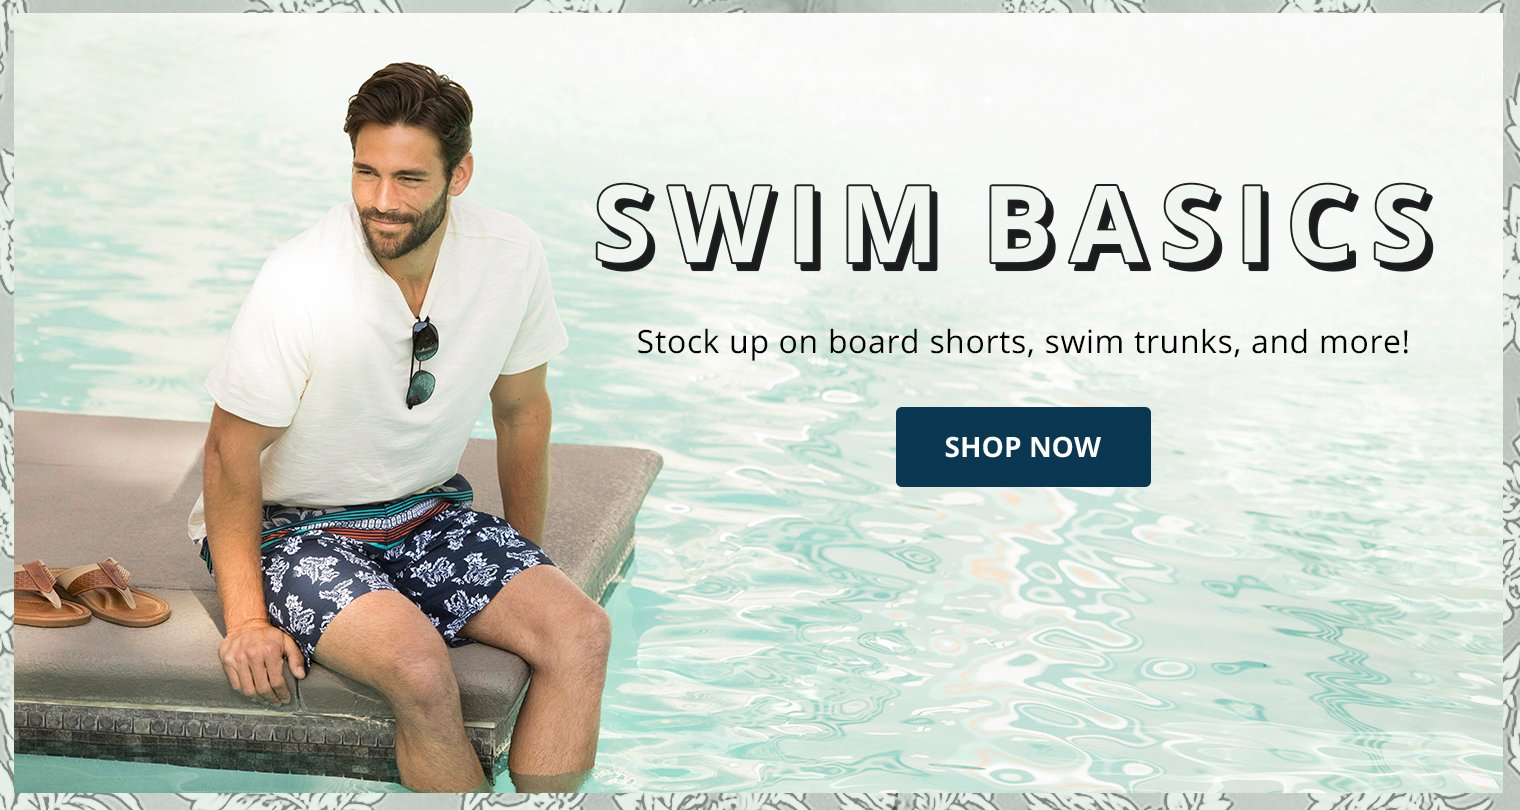 Swim basics. Stock up on board shorts, swim trunks, and more!